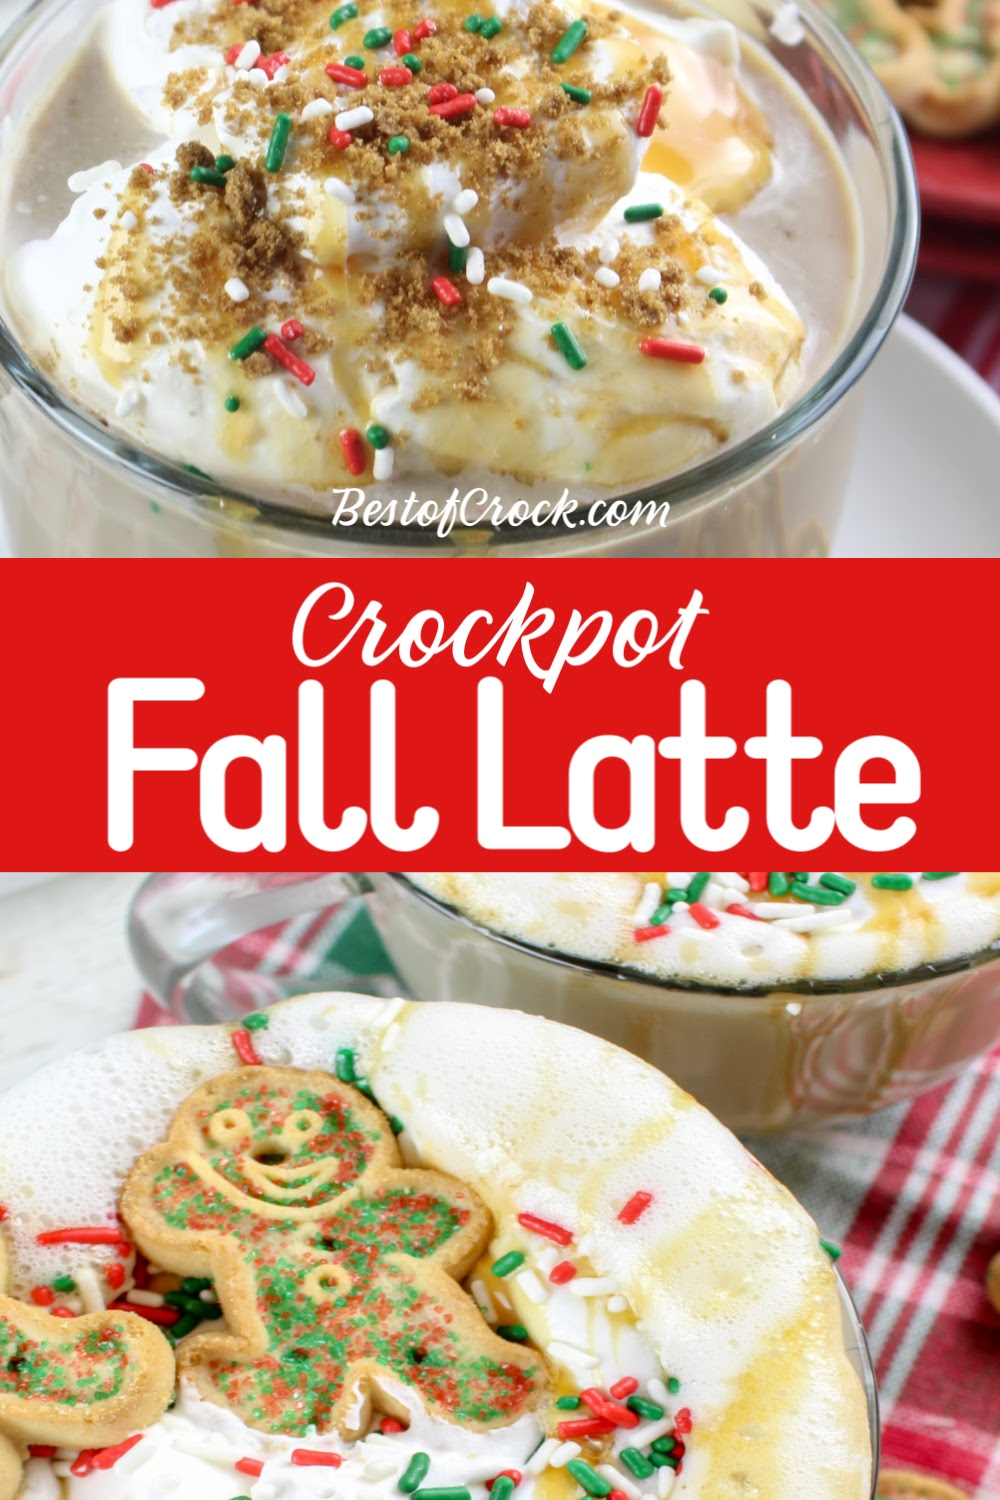 A crockpot Christmas latte is a great way to drink in the holidays and it is one of the easiest fall recipes to enjoy as a fall drink or holiday recipe. Christmas Recipes | Christmas Crockpot Recipe | Slow Cooker Recipes for Fall | Holiday Recipes | Holiday Drink Recipes | Easy Latte Recipe | Fall Crockpot Recipe | Slow Cooker Christmas Recipes #christmas #crockpot via @bestofcrock